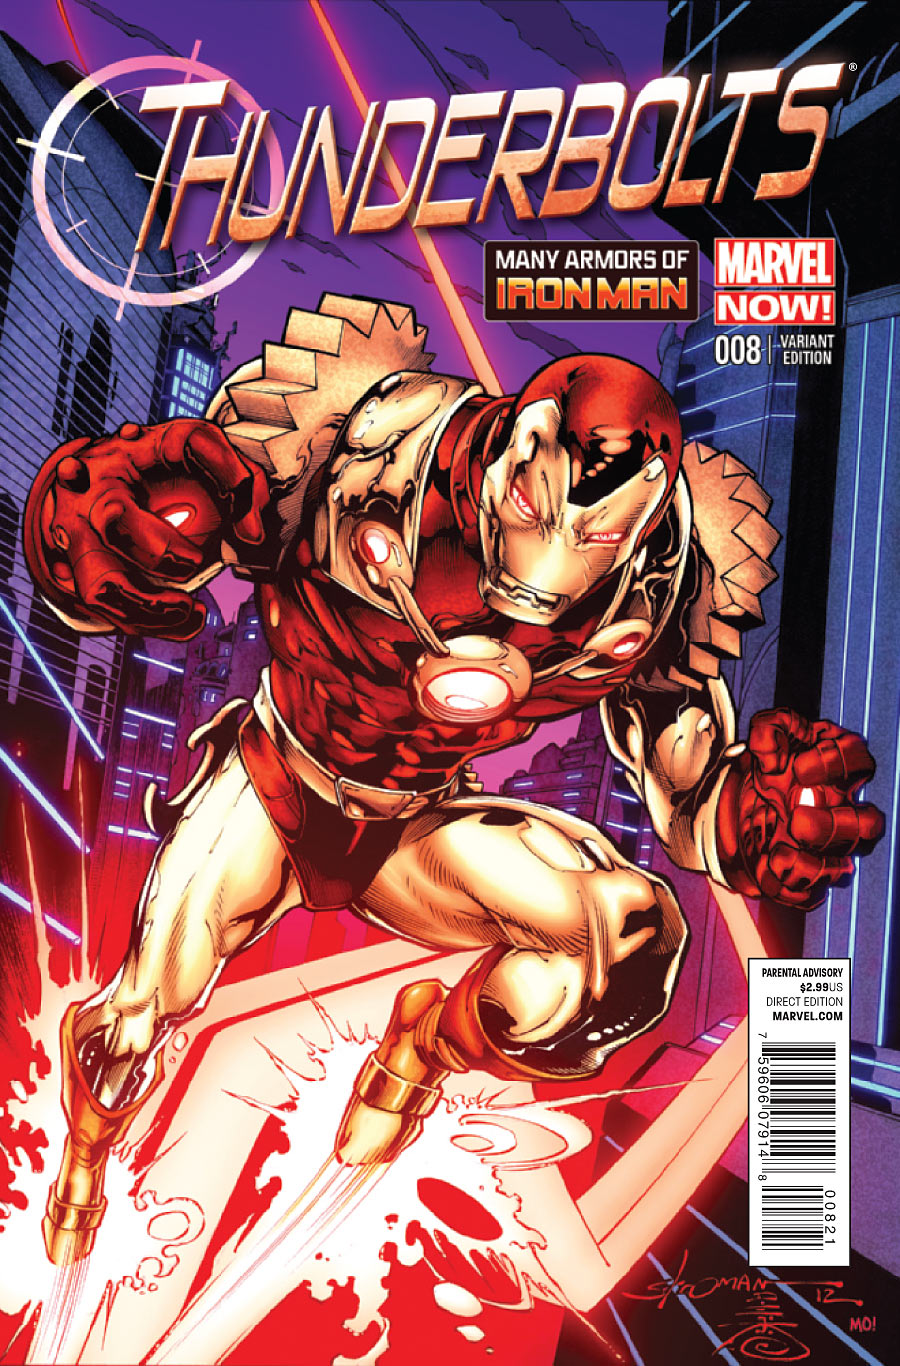 Thunderbolts Vol 2 8 Many Armors of Iron Man Variant.jpg